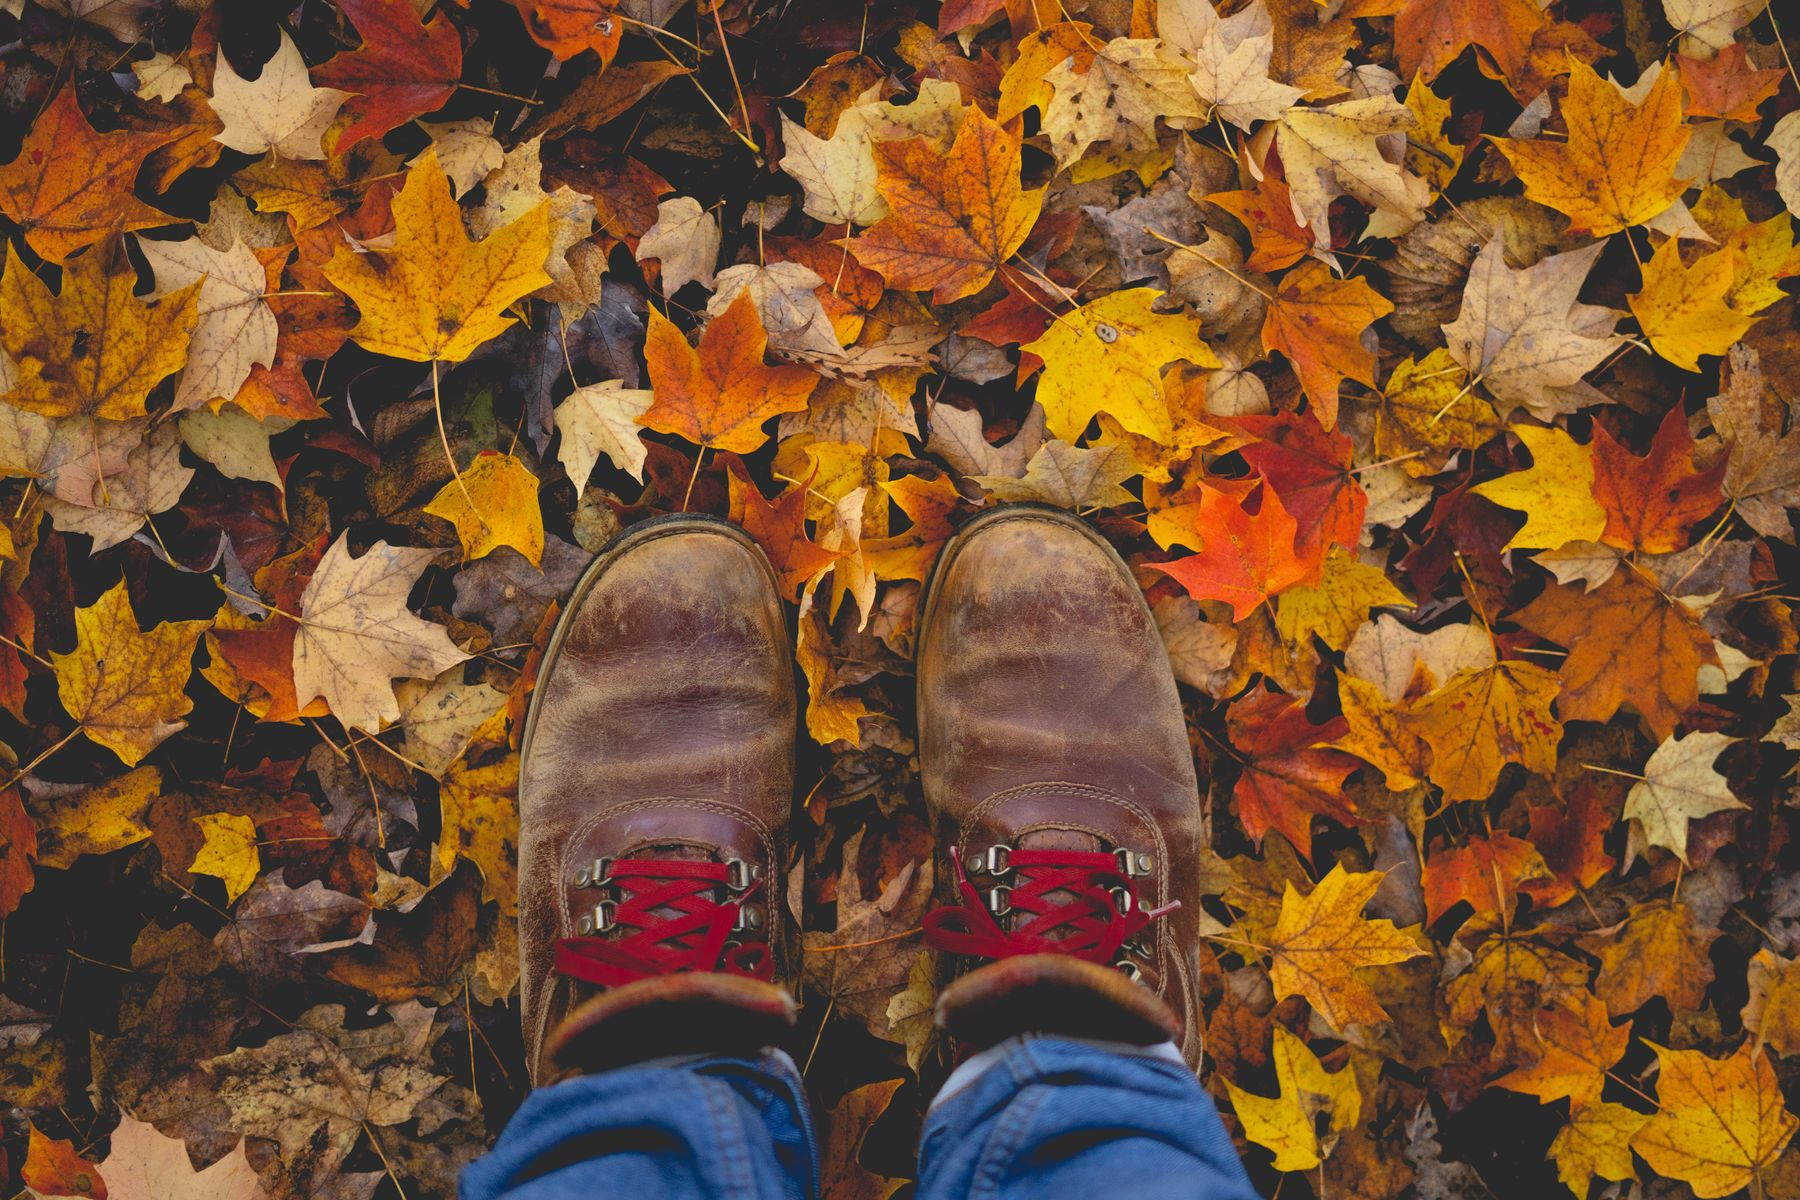 person wearing hiking shoes standing on fall colour leaves